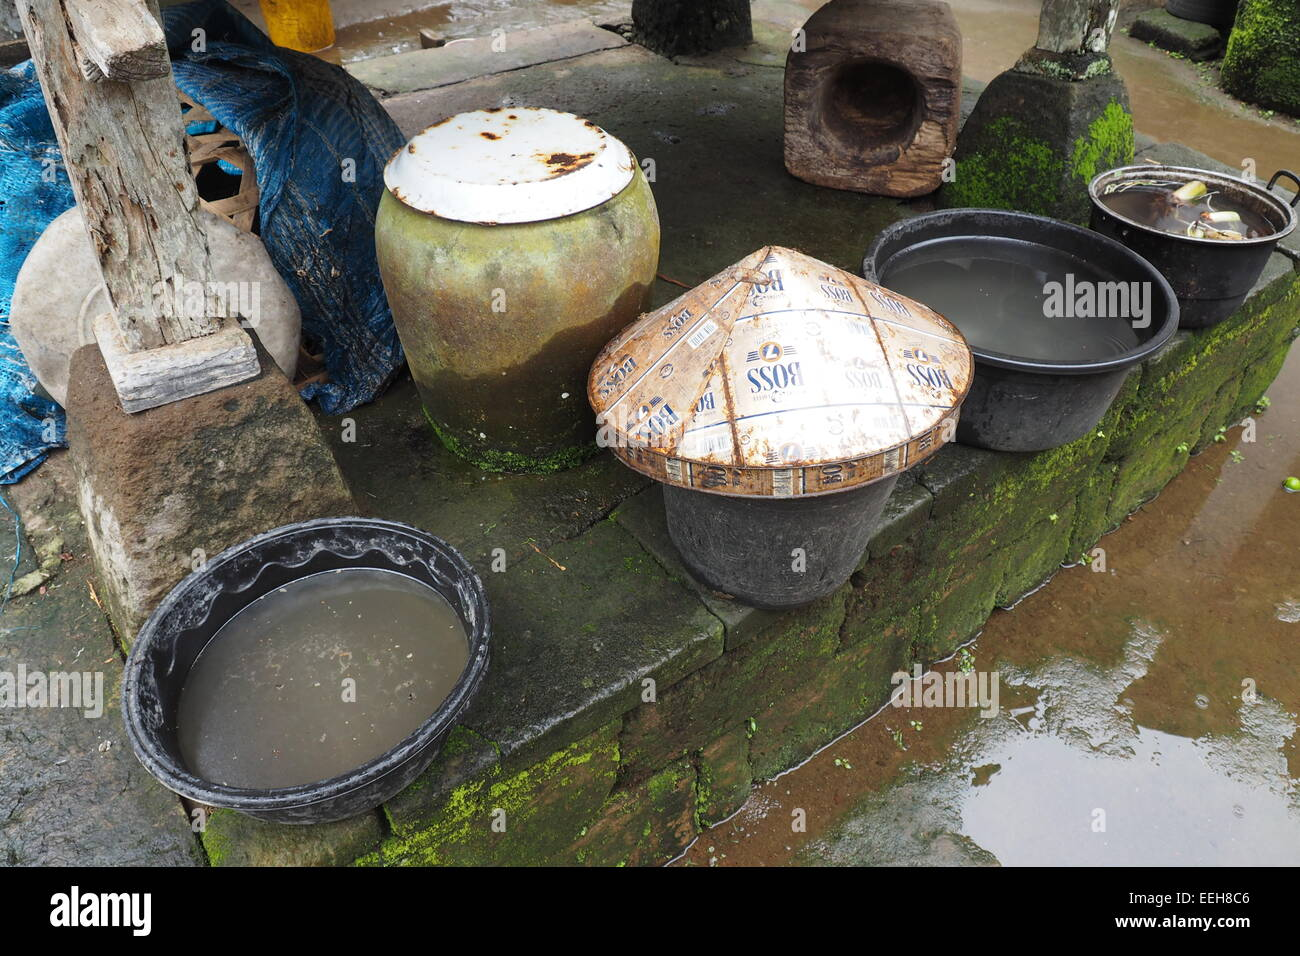 cooking pots and pots of water in a food preparation area in a cooking pots and pots of water in a food preparation area in a home in bali